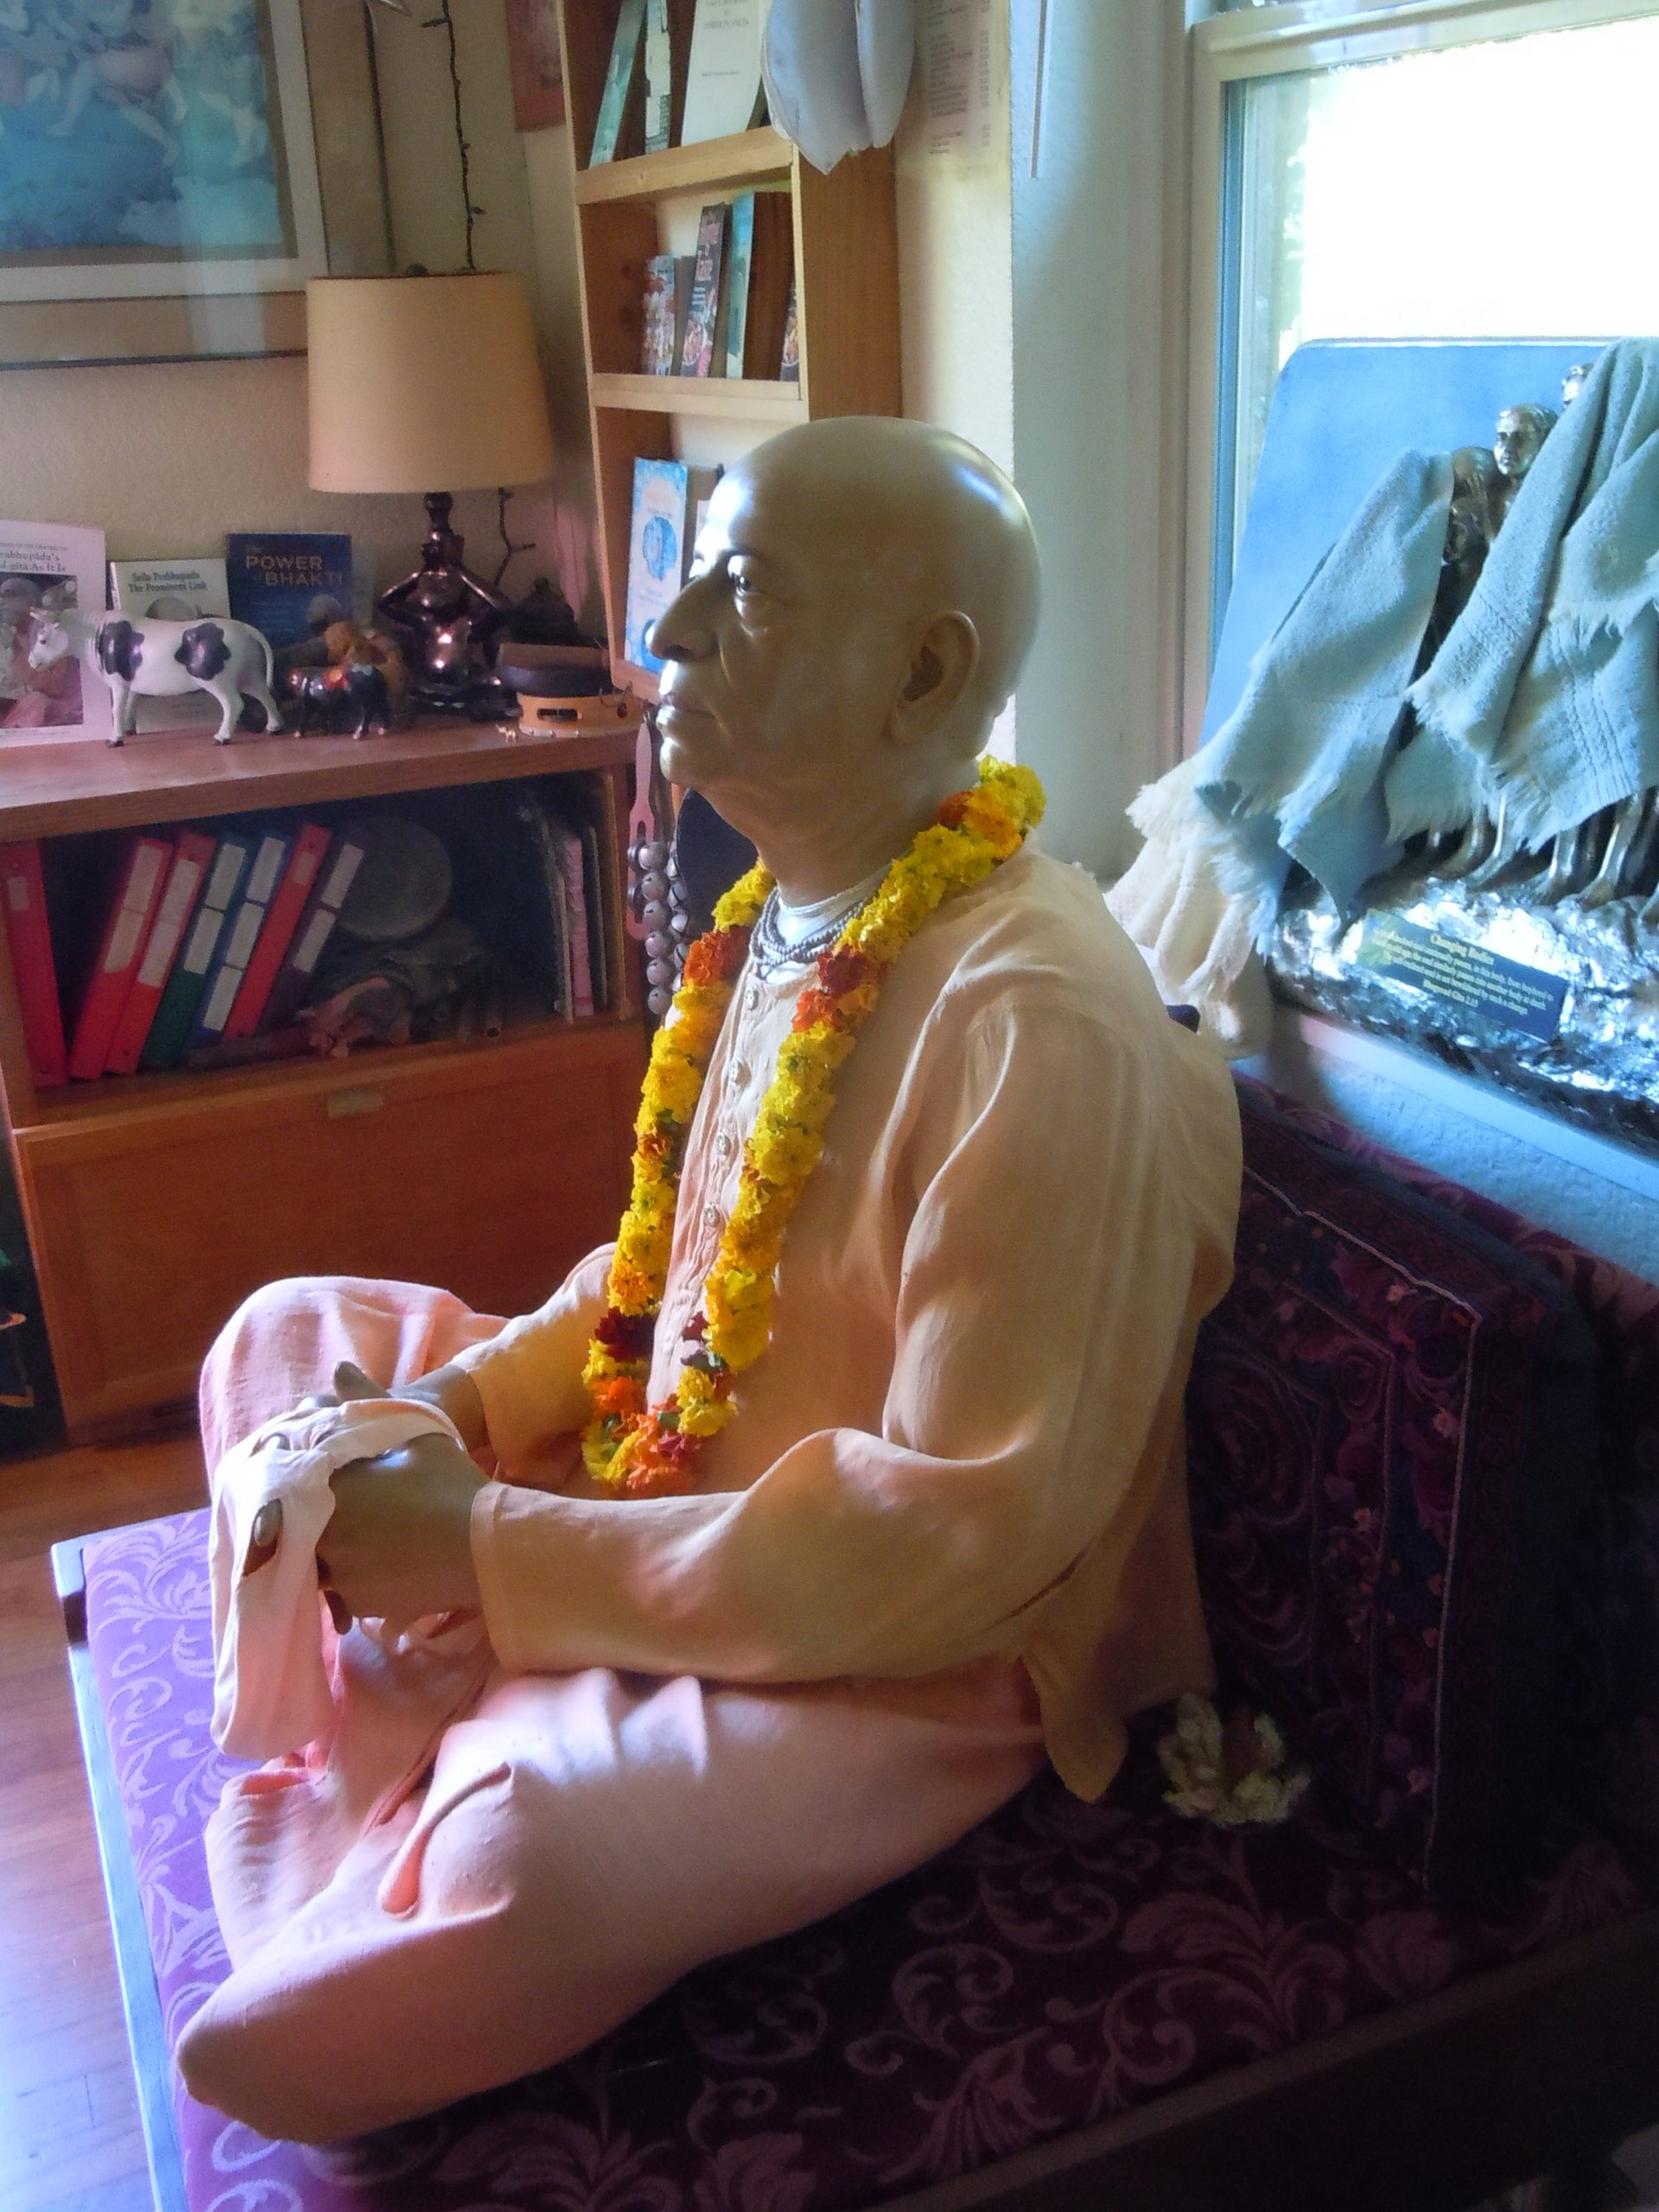 GBC concoctions refuted here by the actual followers of Srila Prabhupada